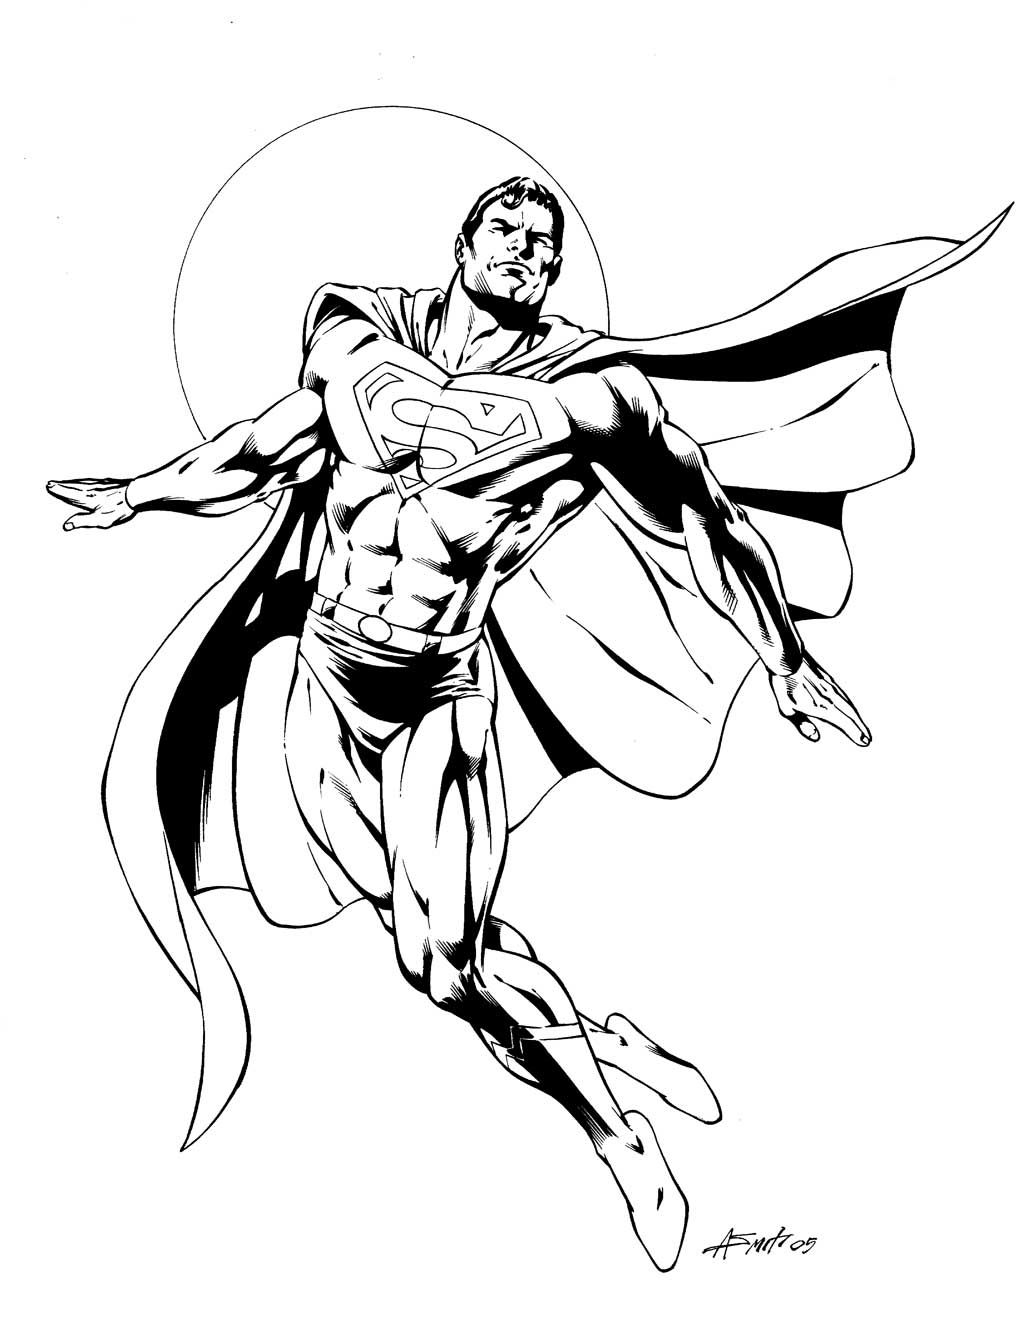 Superhero Superman Coloring Pages | Judah Jon | Pinterest